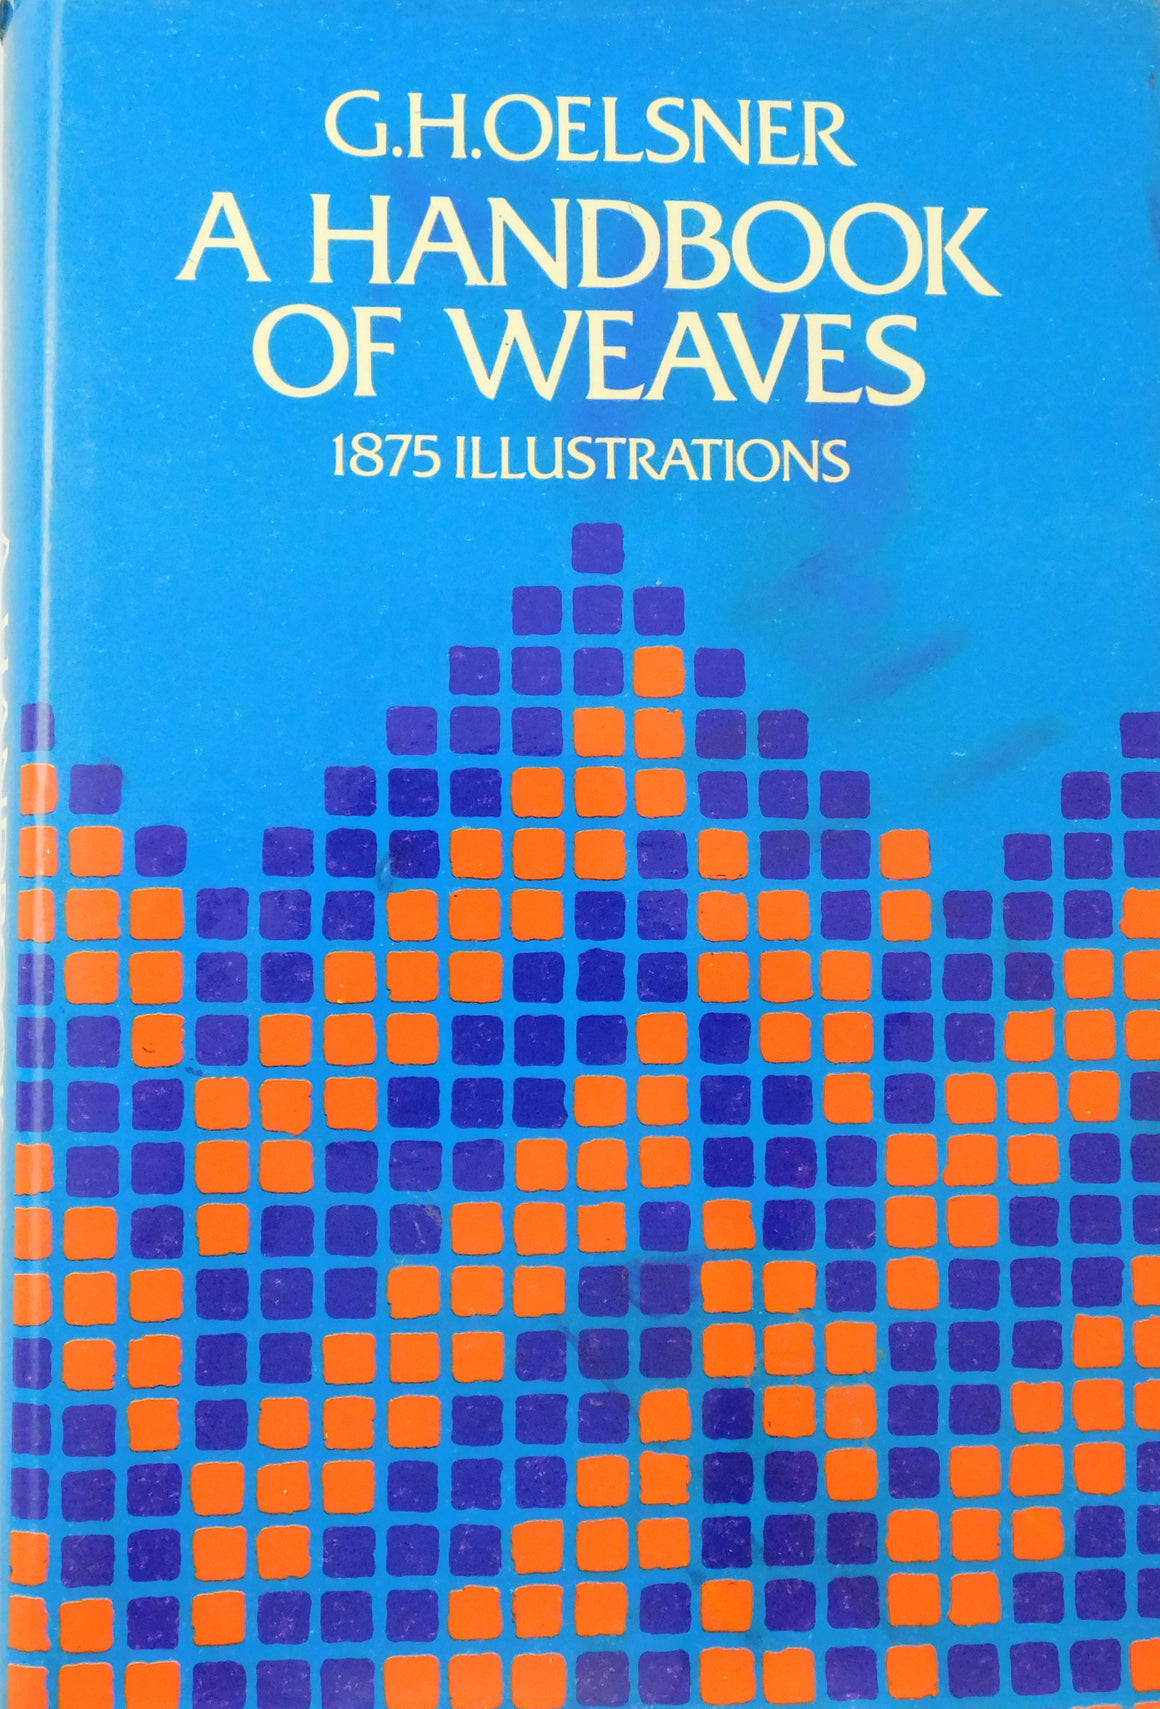 A Handbook of Weaves 1875 Illustrations - Used Book